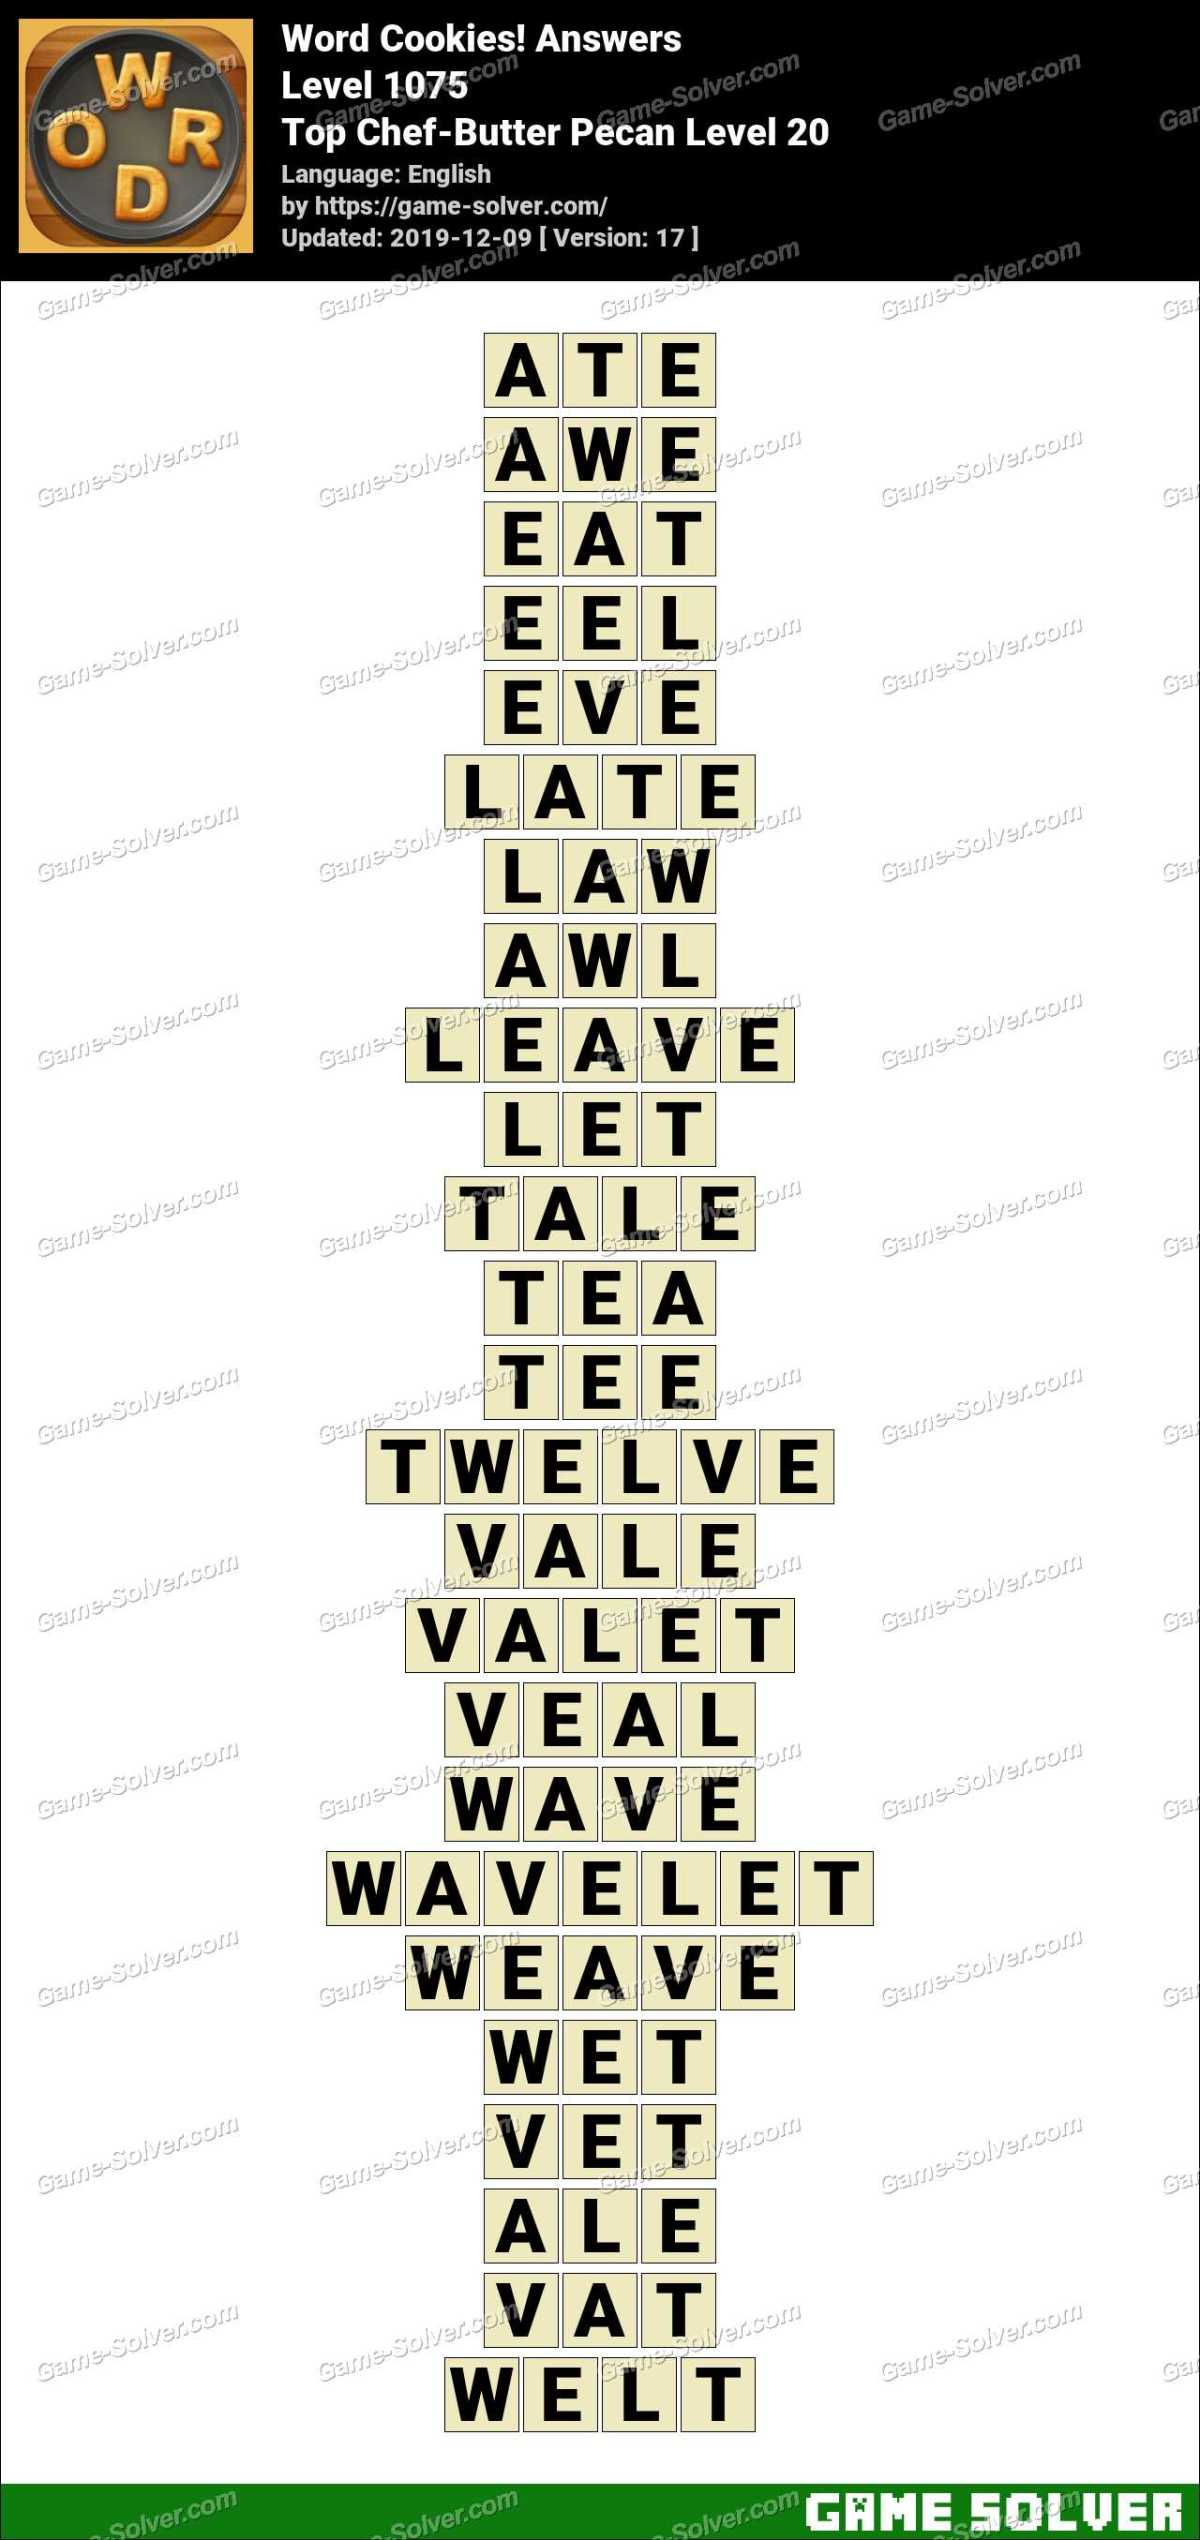 Word Cookies Top Chef-Butter Pecan Level 20 Answers